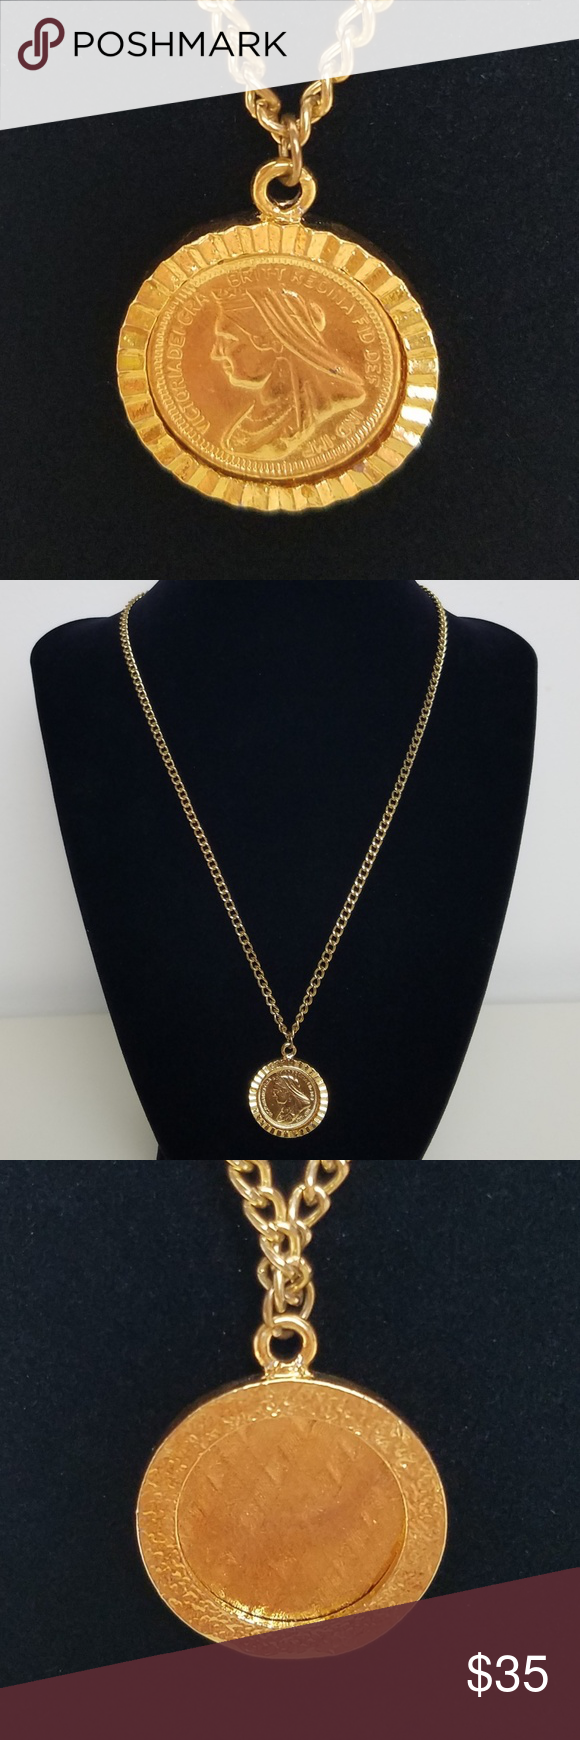 Solid 9ct Yellow Gold Sovereign Coin Plain Bezel Pendant Mount Finding